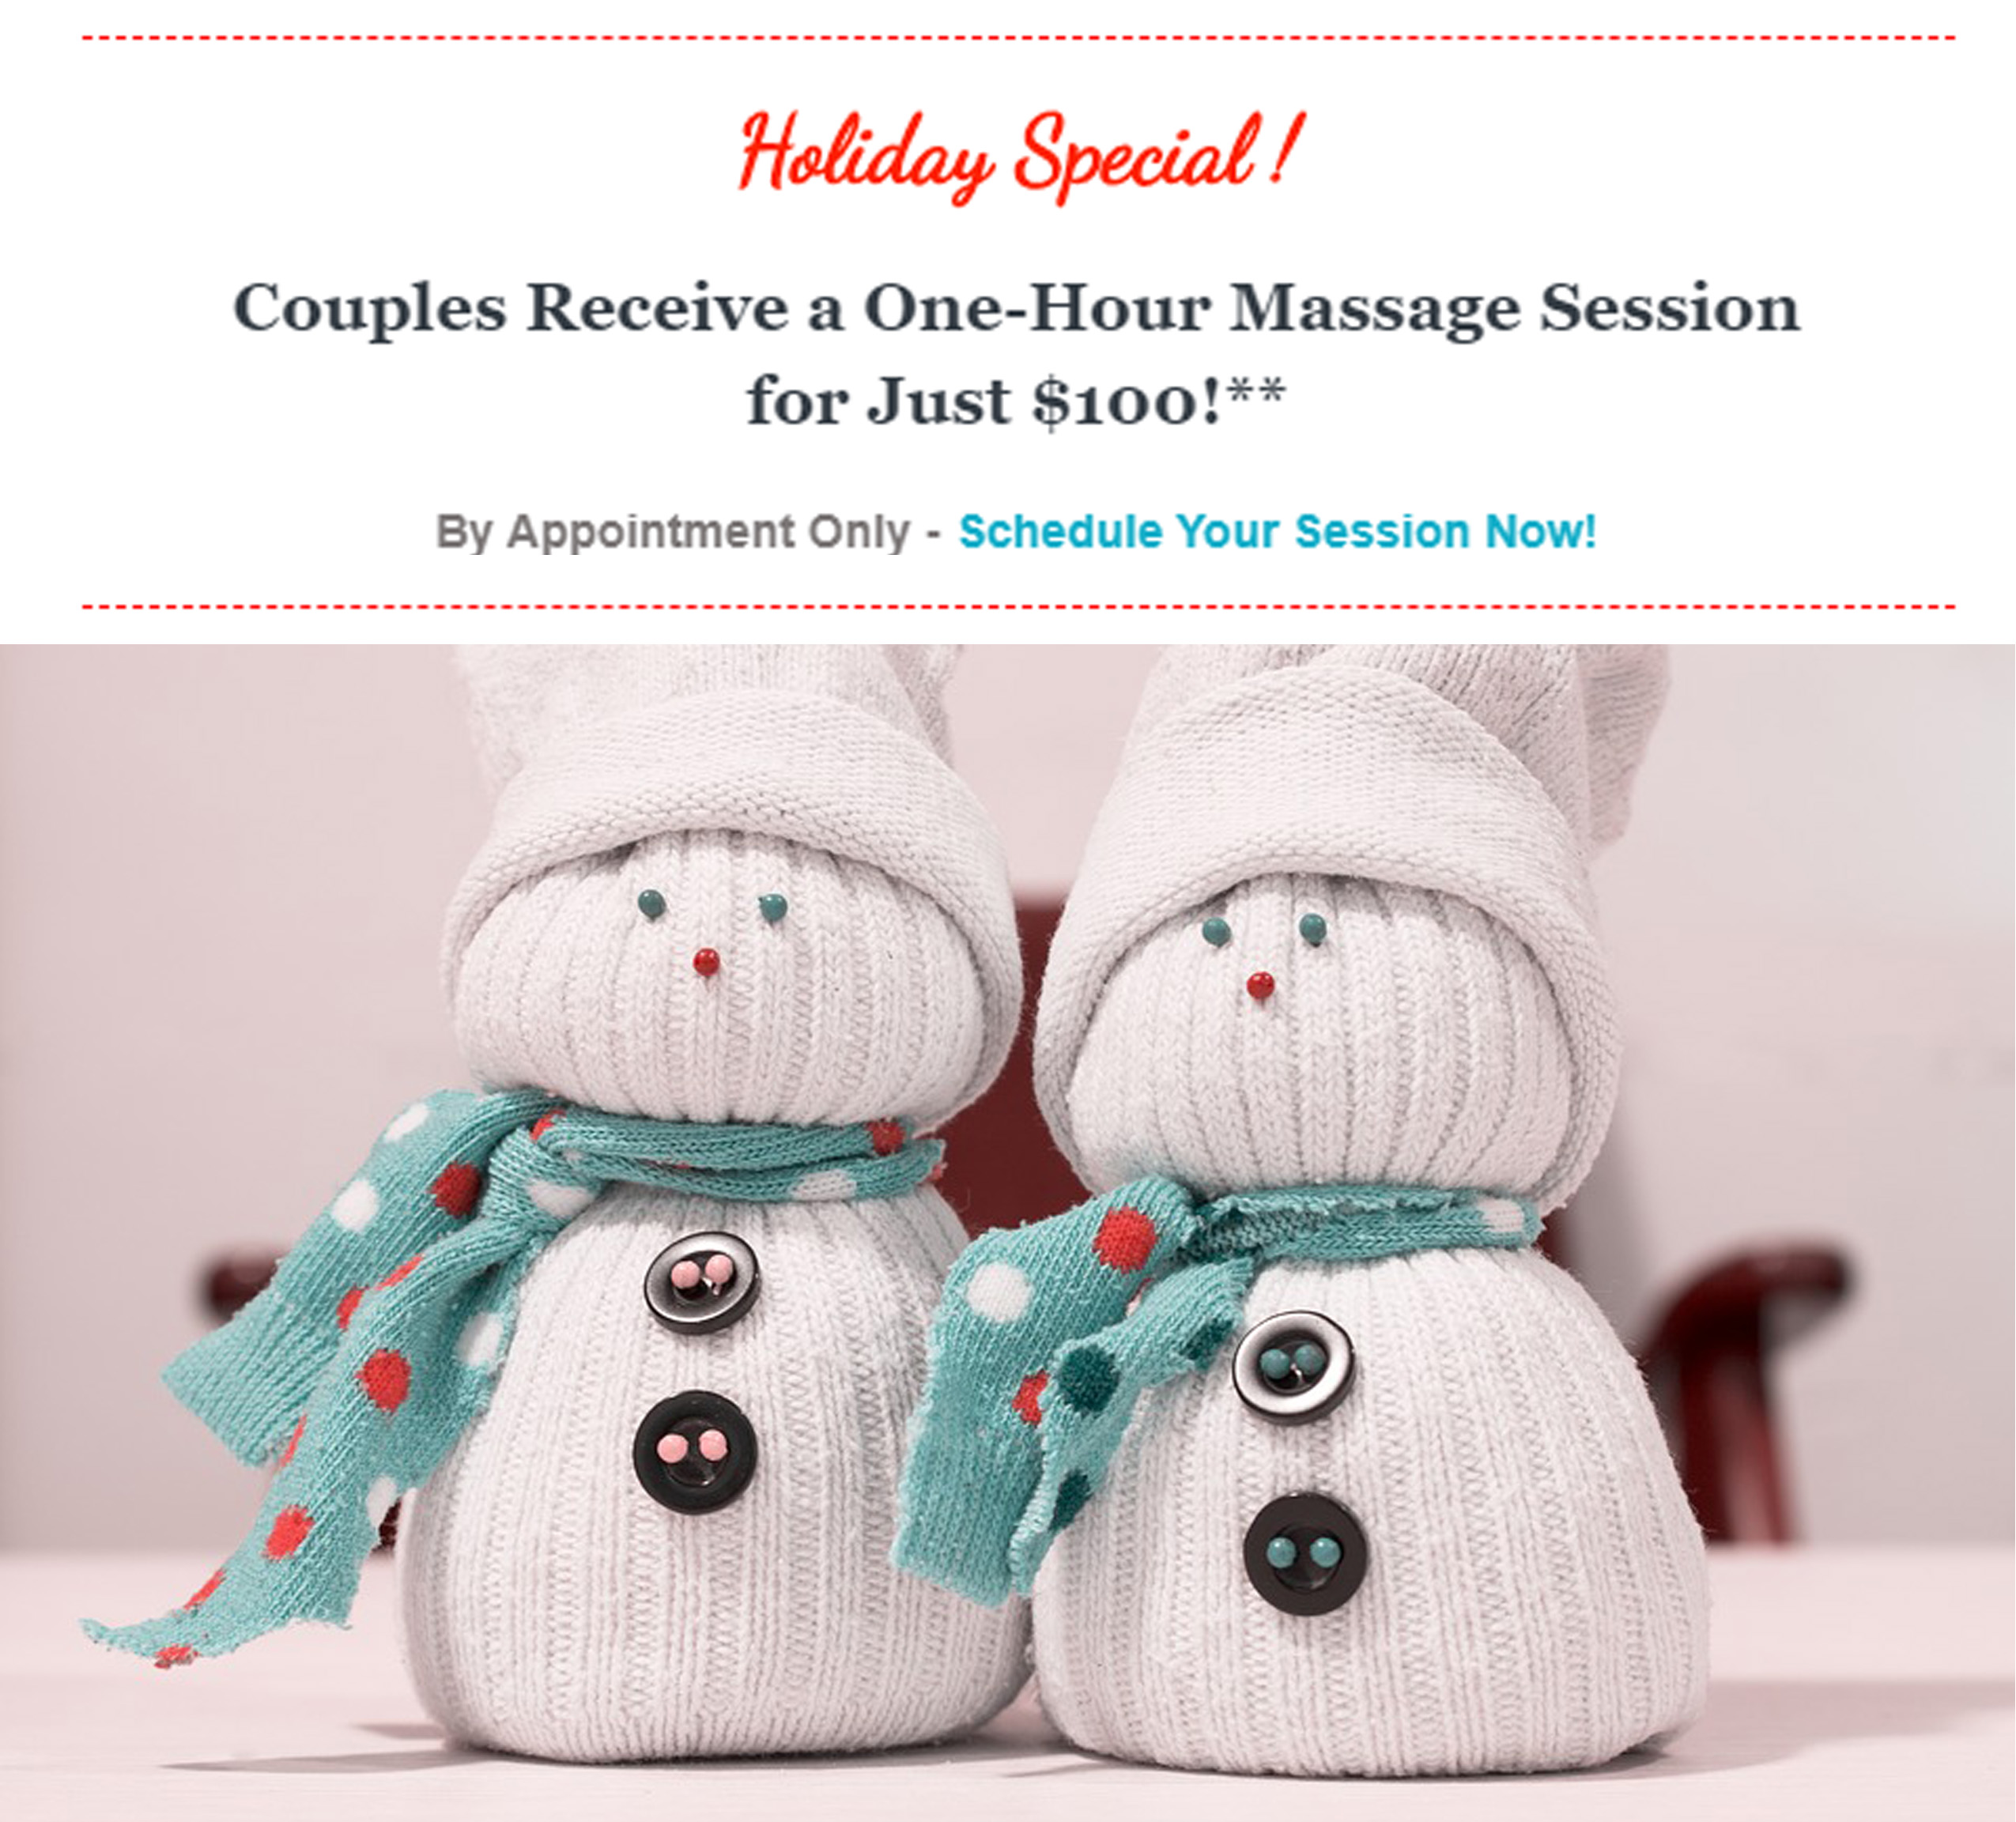 Holiday Special - Couples Massage | Massage Therapy | Heaven Sent Massage of Ellijay | Ellijay Georgia (GA) 30540